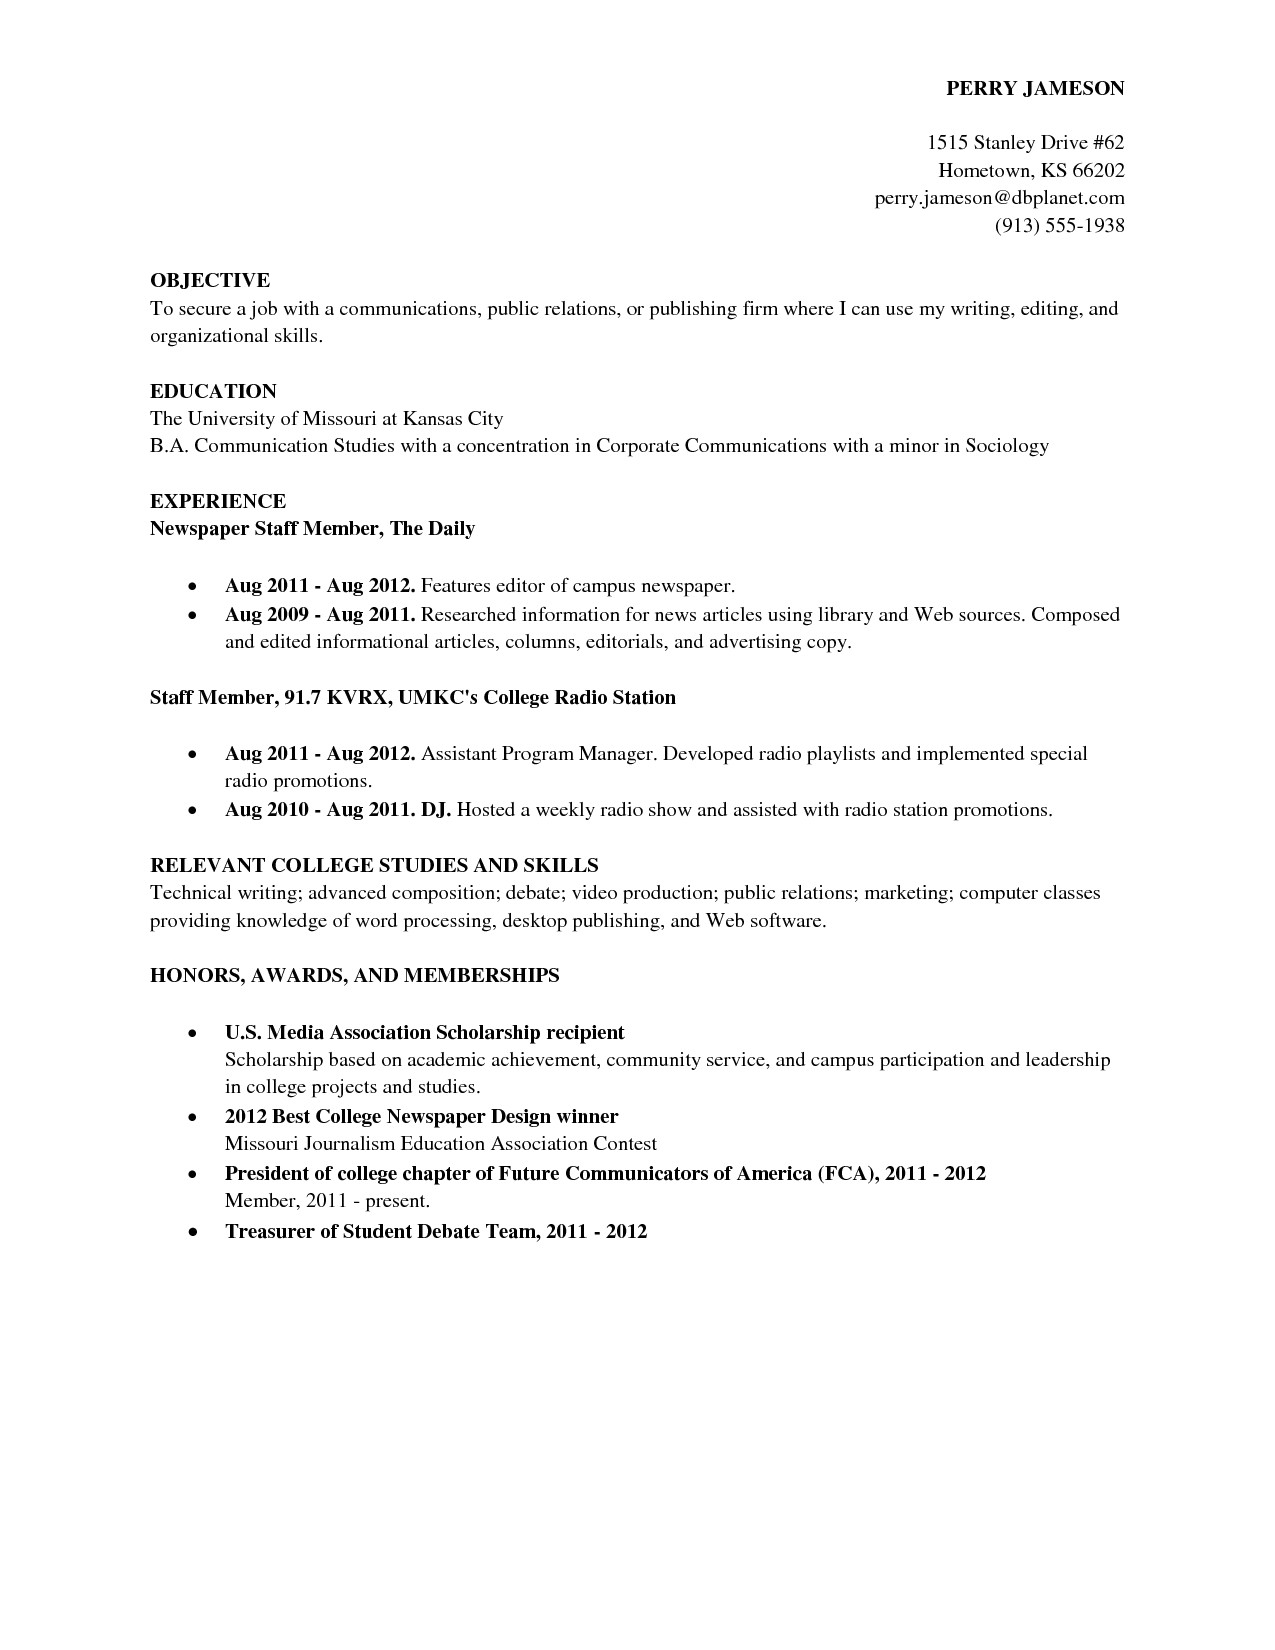 Sample Resume Skills for College Students College Graduate Resume Template Health Symptoms and